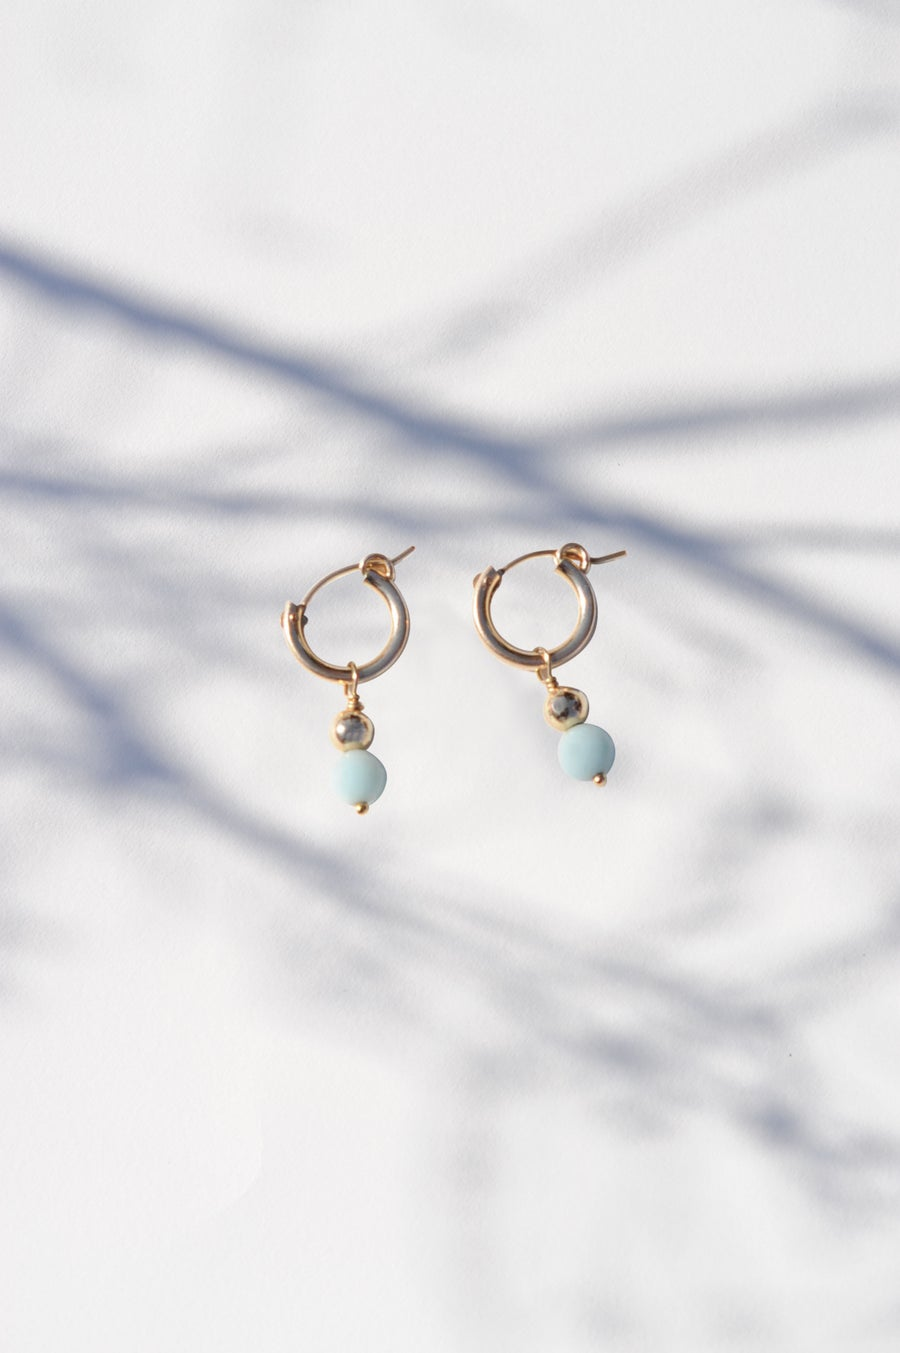 Image of Boucles Lupita agate bleue